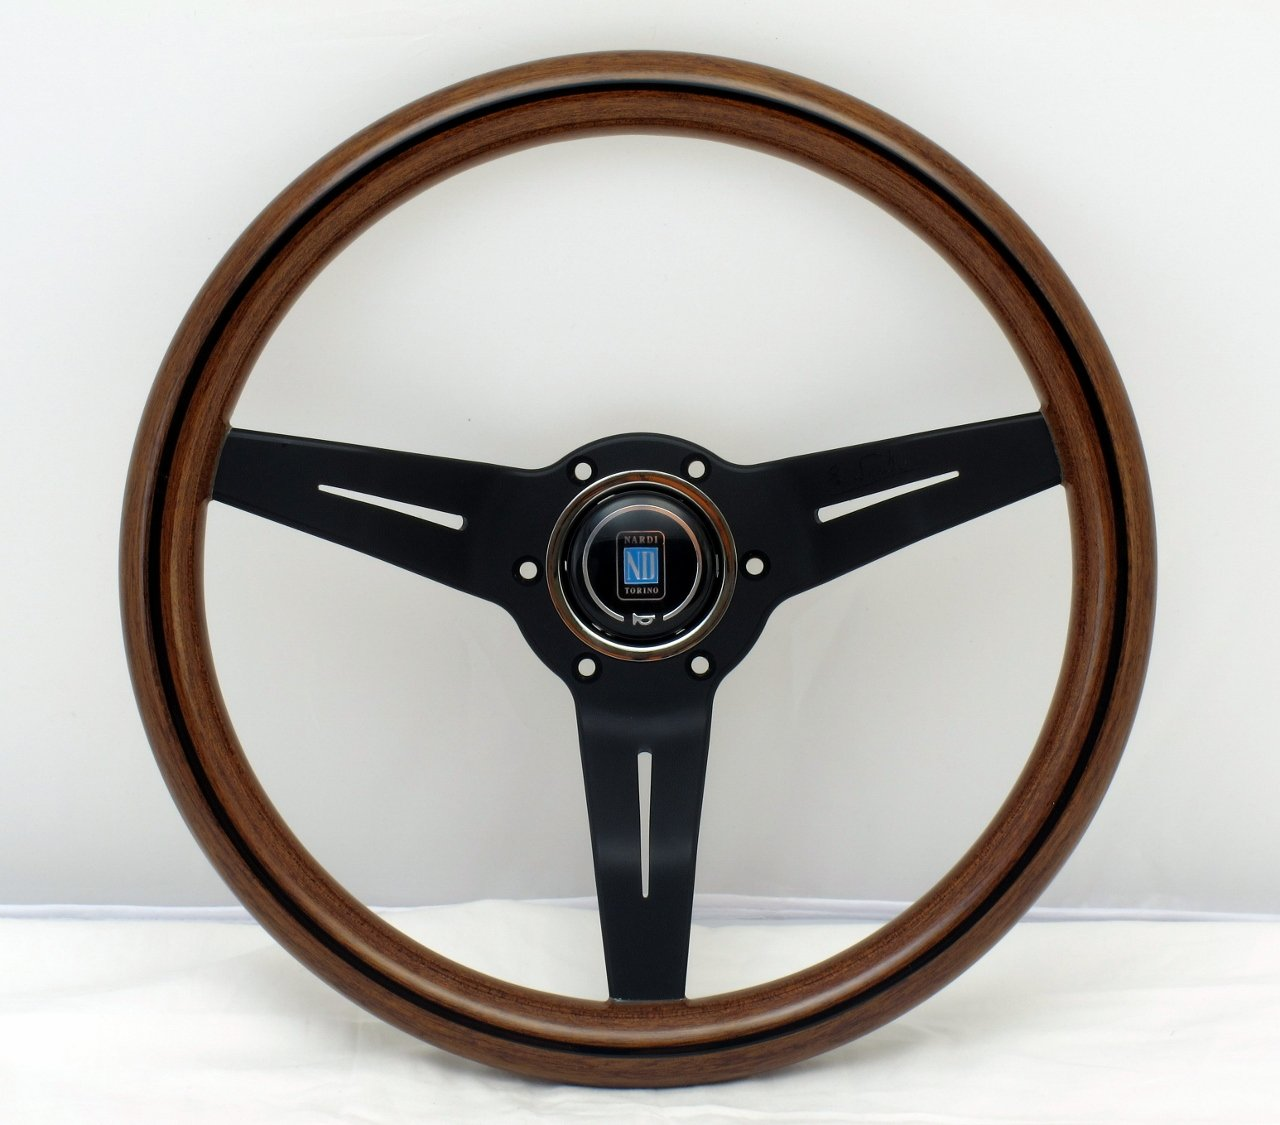 NARDI Steering Wheel Deep Corn 330mm - Mahogany Wood with Black Spokes Classic Horn Button Part # 5069.33.2000 12.99 inches